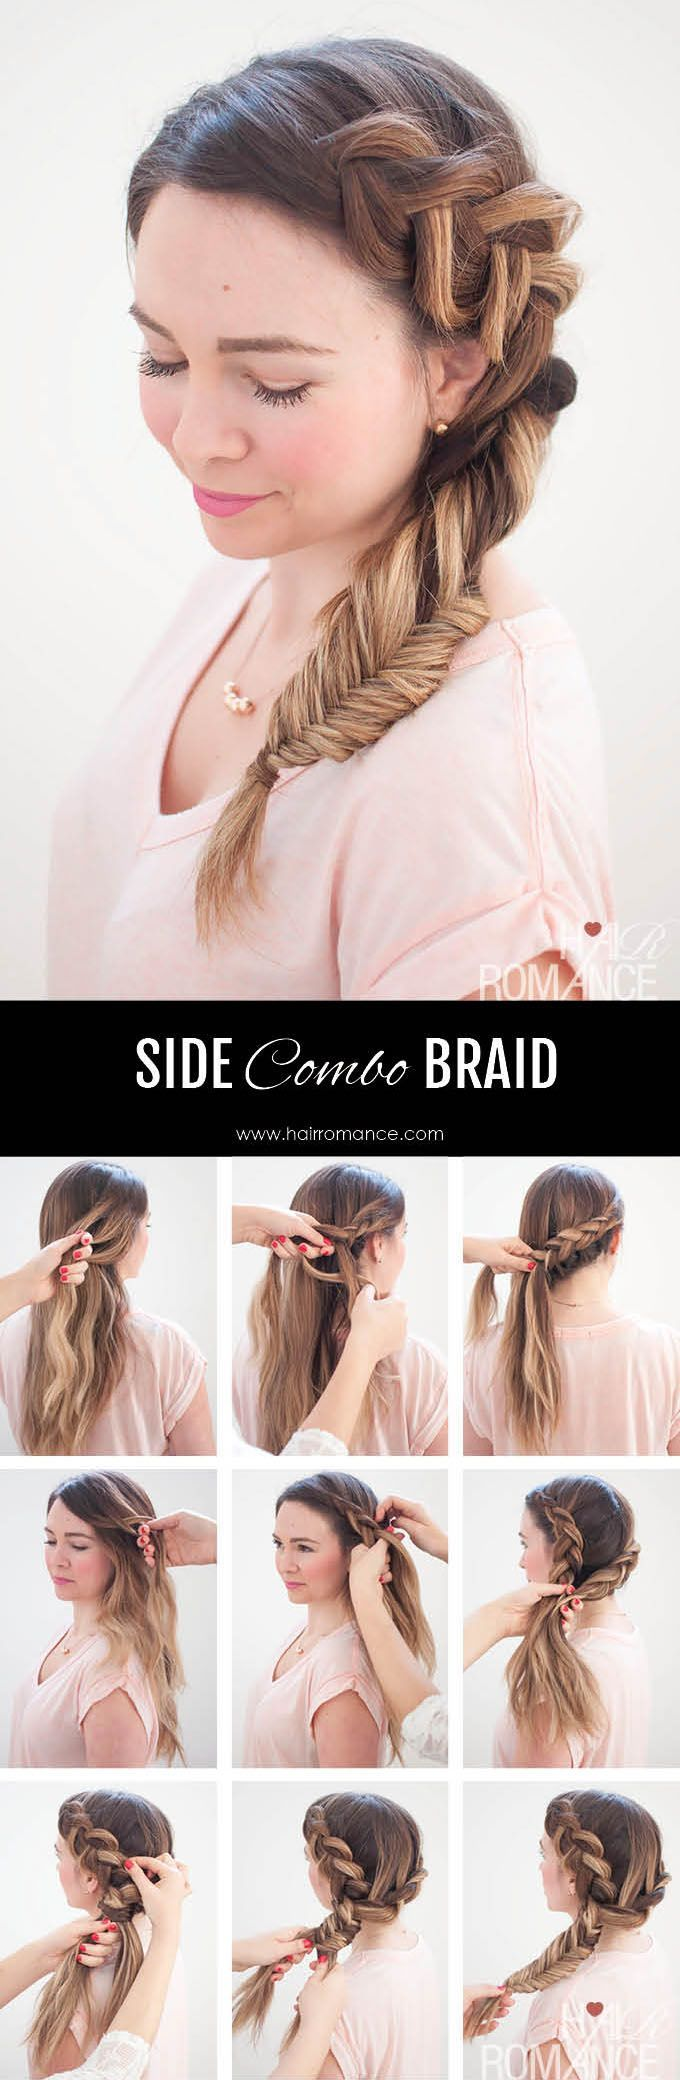 best hair colorstyles images on pinterest cute hairstyles